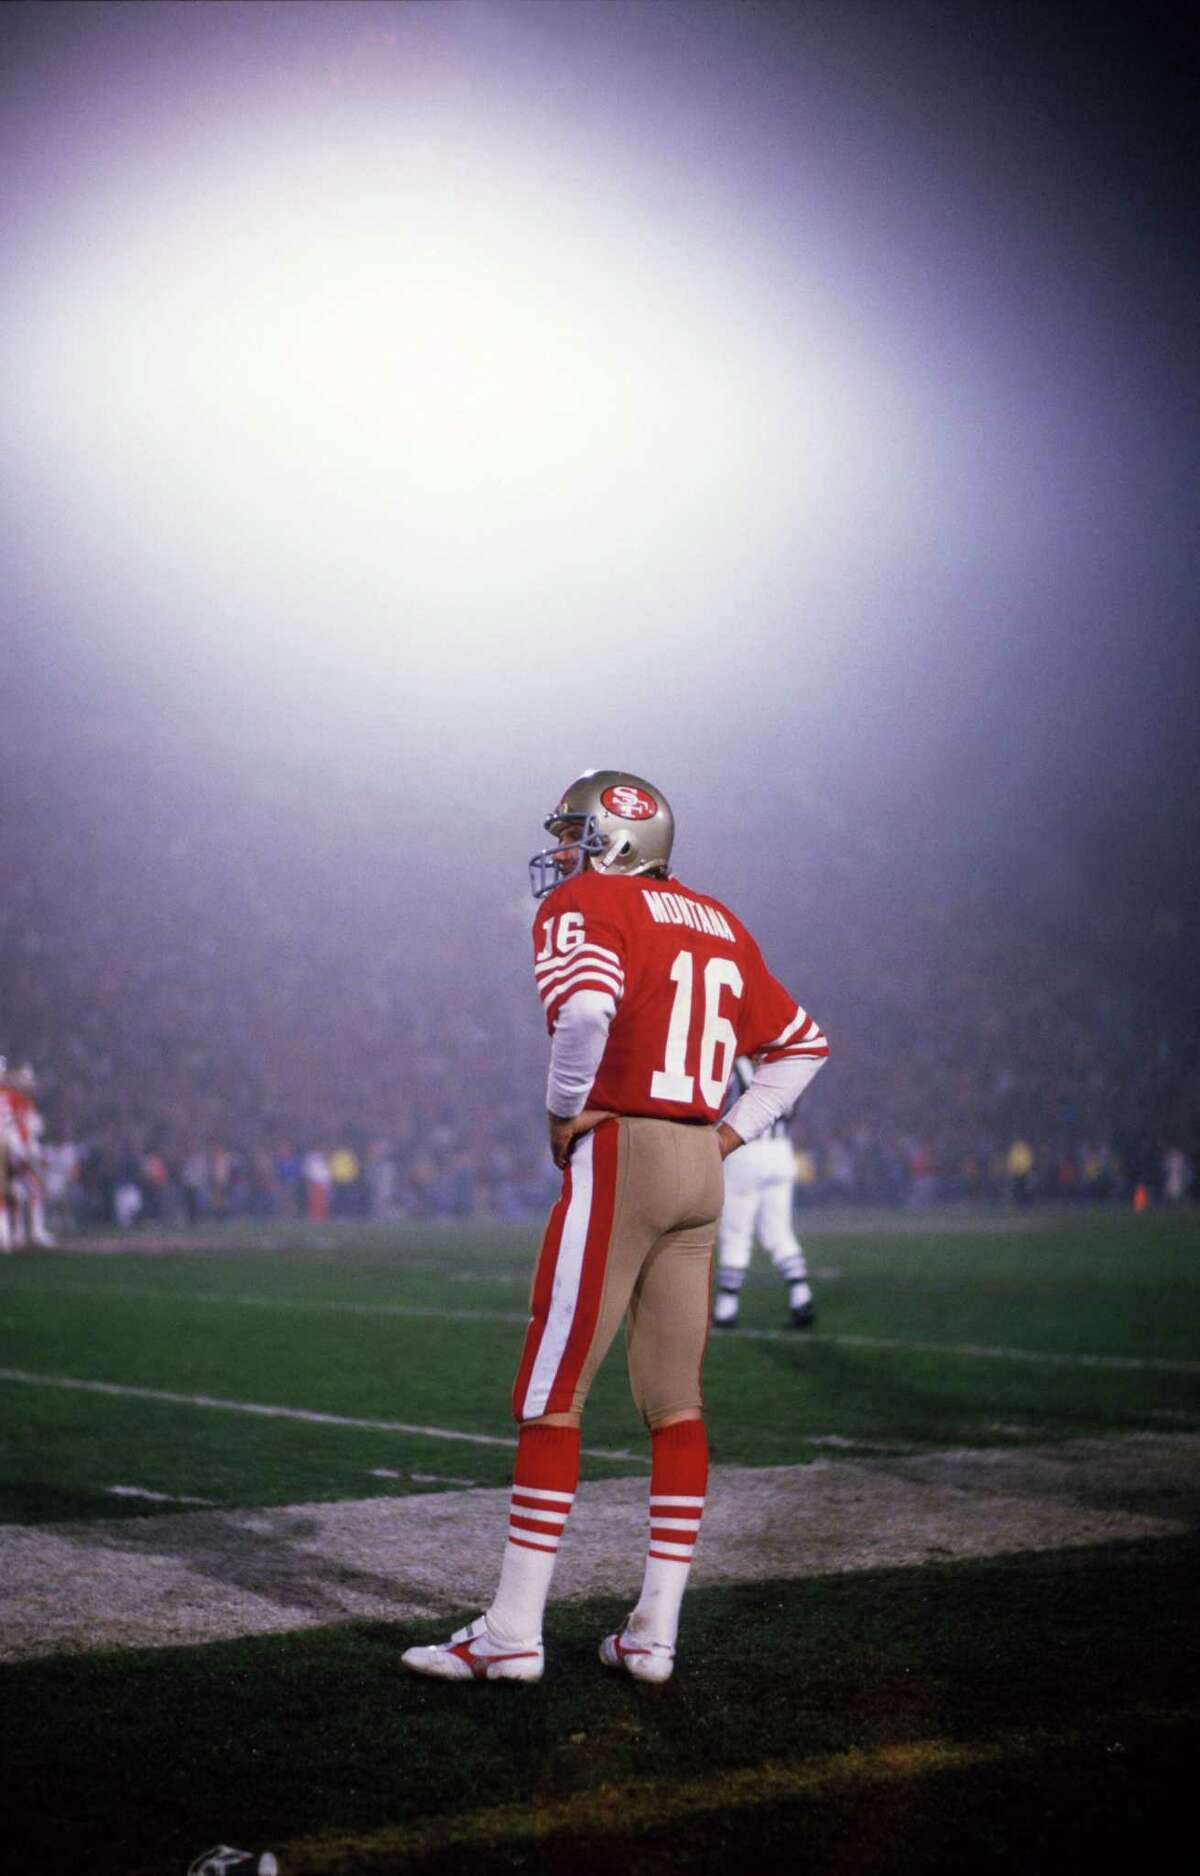 21 Jan 1985: Quarterback Joe Montana of the San Francisco 49ers on the sideline during the Niners 38-16 victory over the Miami Dolphins in Super Bowl XIX at Stanford Stadium in Stanford, CA. (Photo by Icon Sportswire)